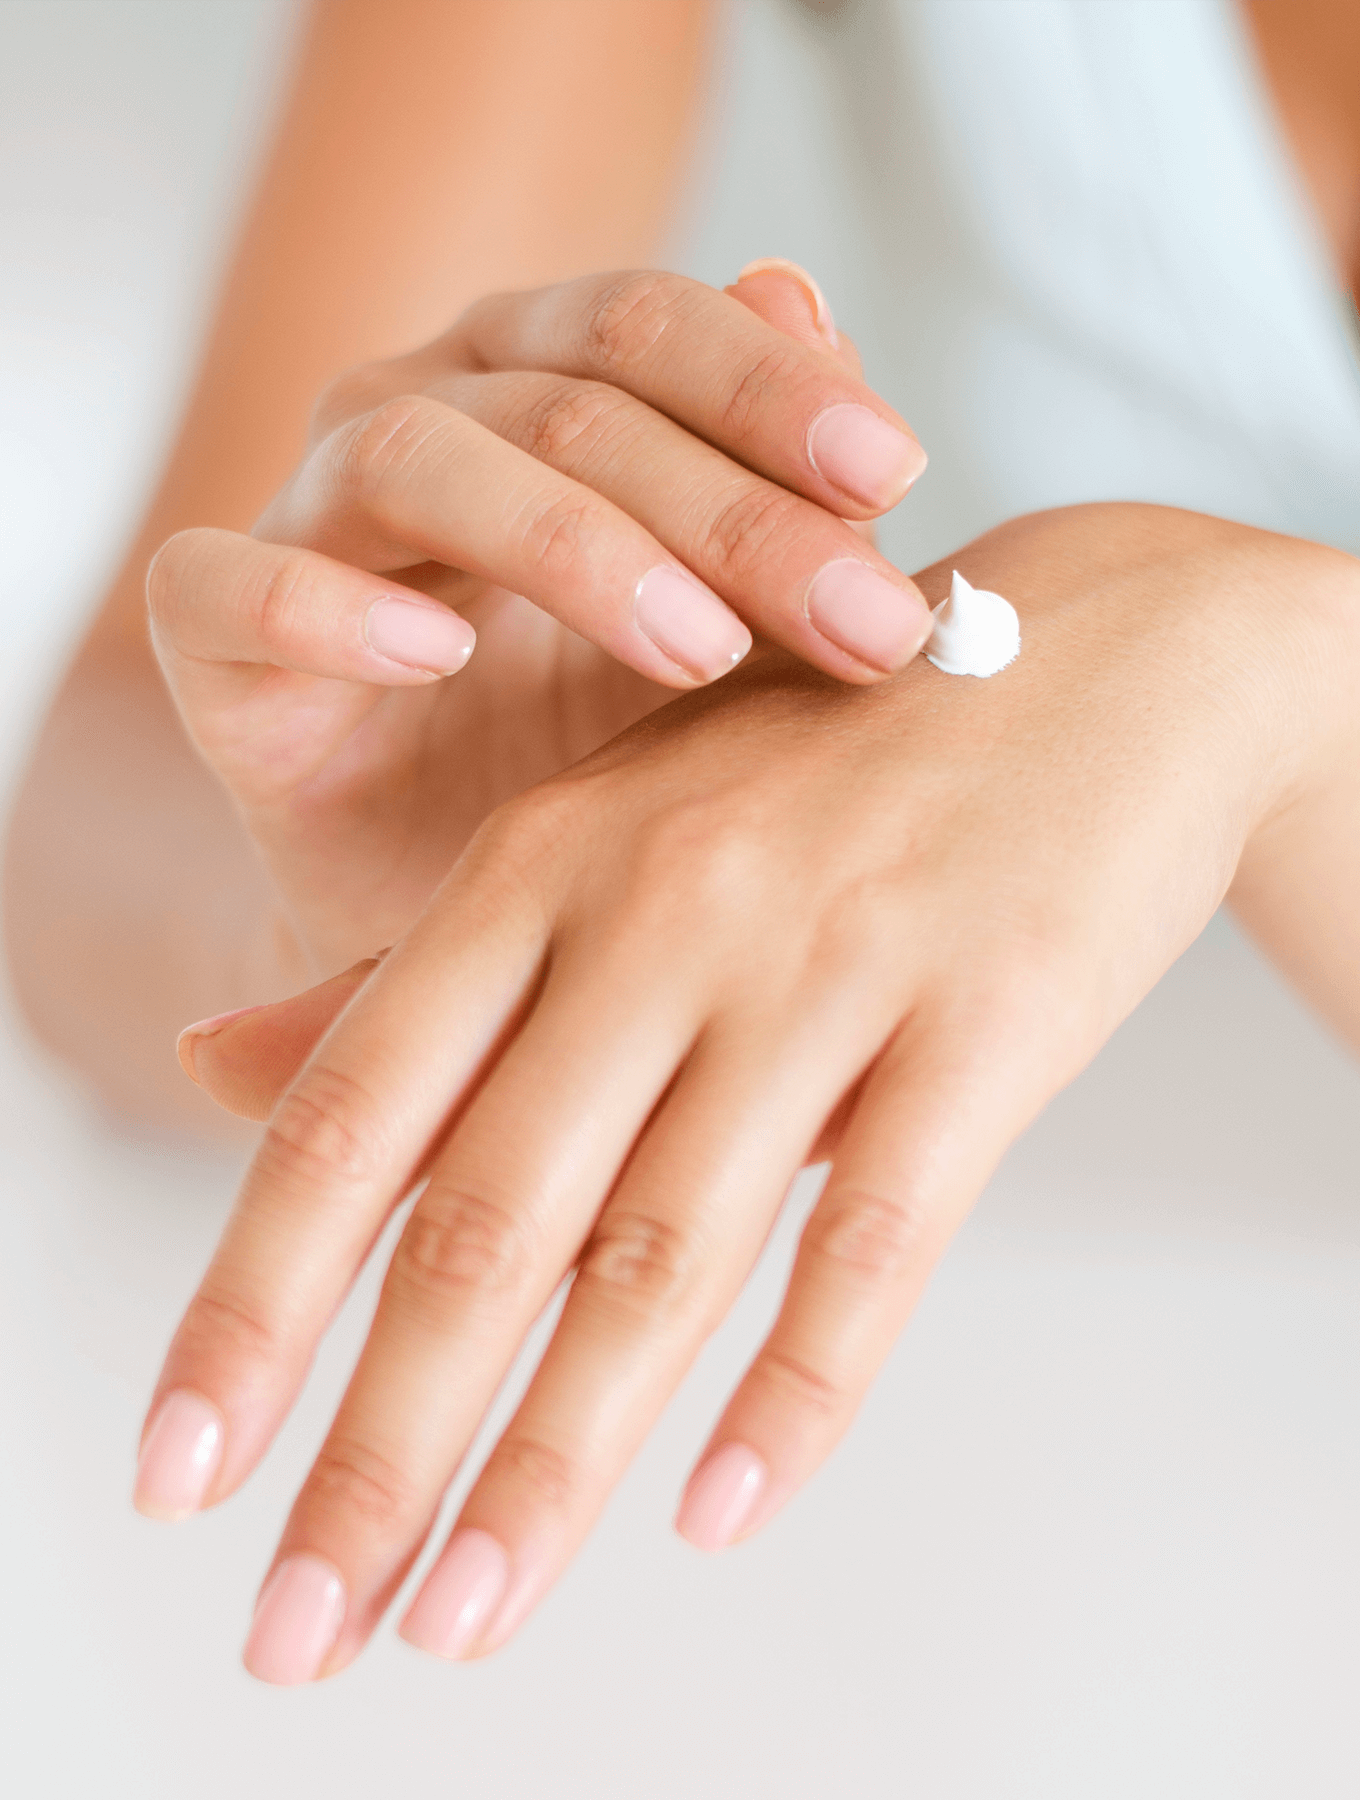 The 10 Best Hand Creams For Soft Hands | Pinterest | Group, Board ...